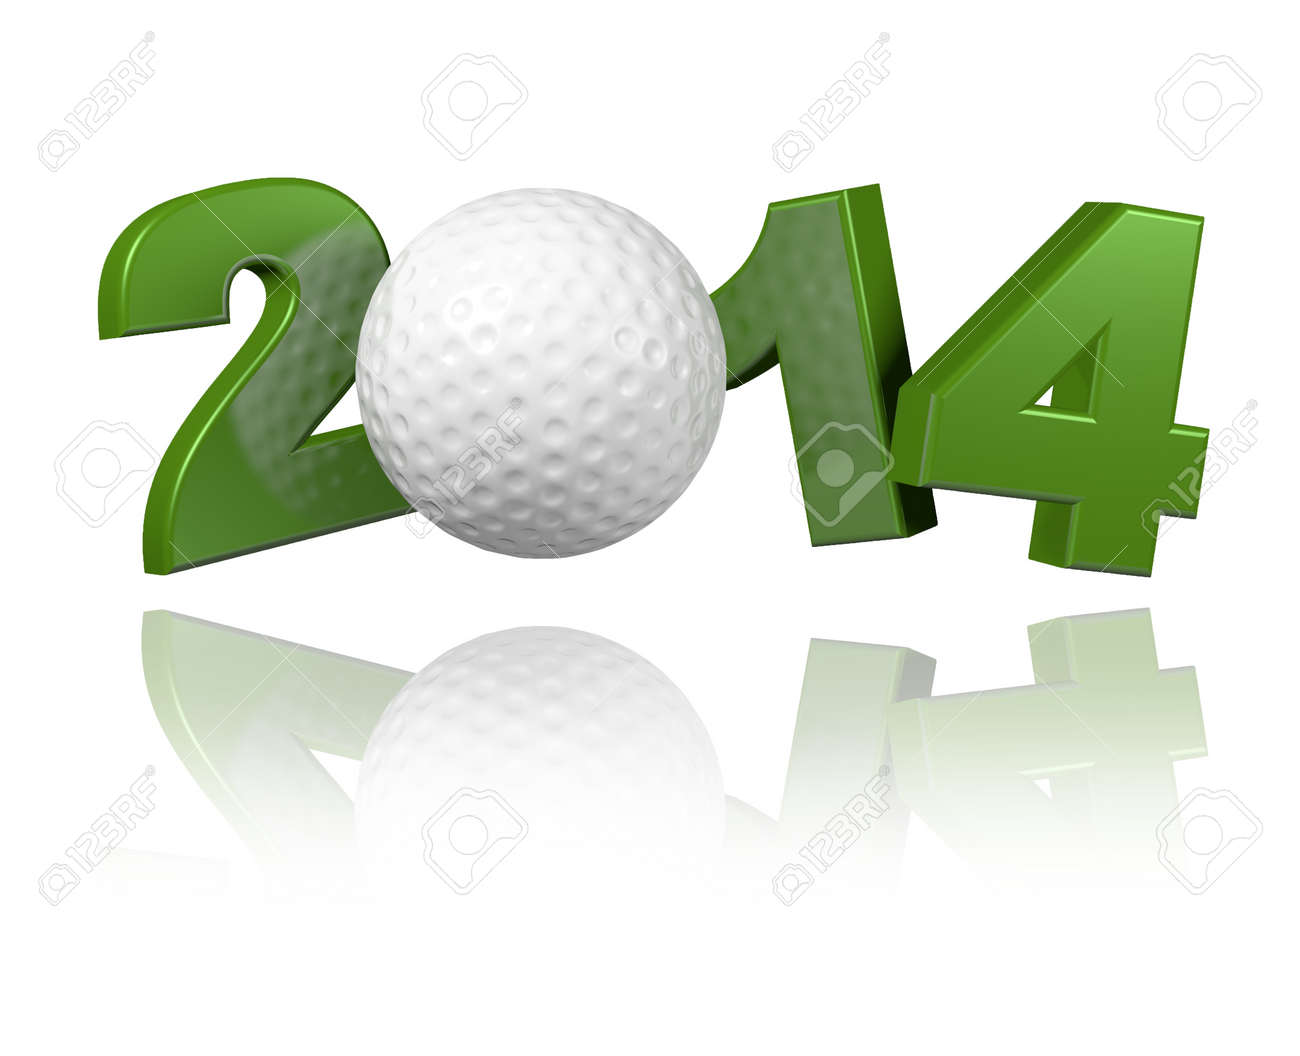 Golf 2014 design with a White Background - 23283405